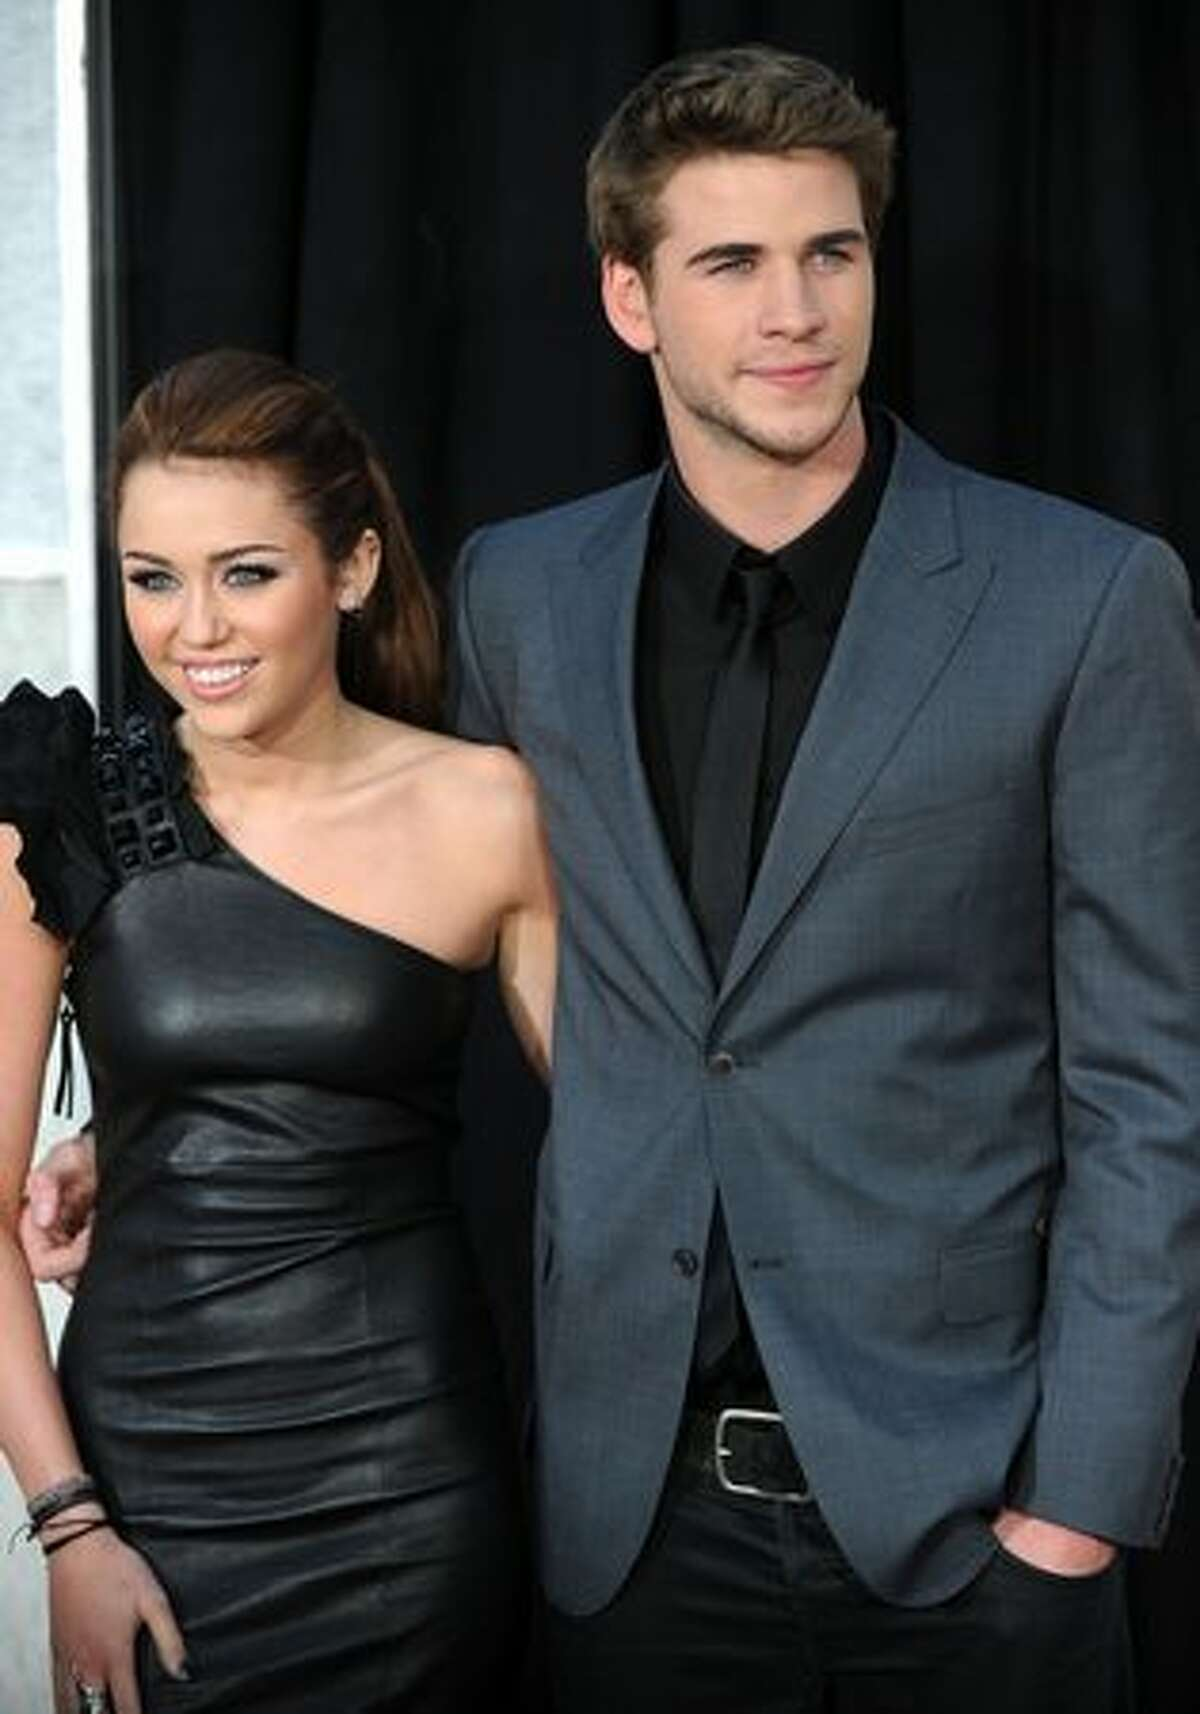 Actress and singer Miley Cyrus and actor Liam Hemsworth arrive for the premiere of